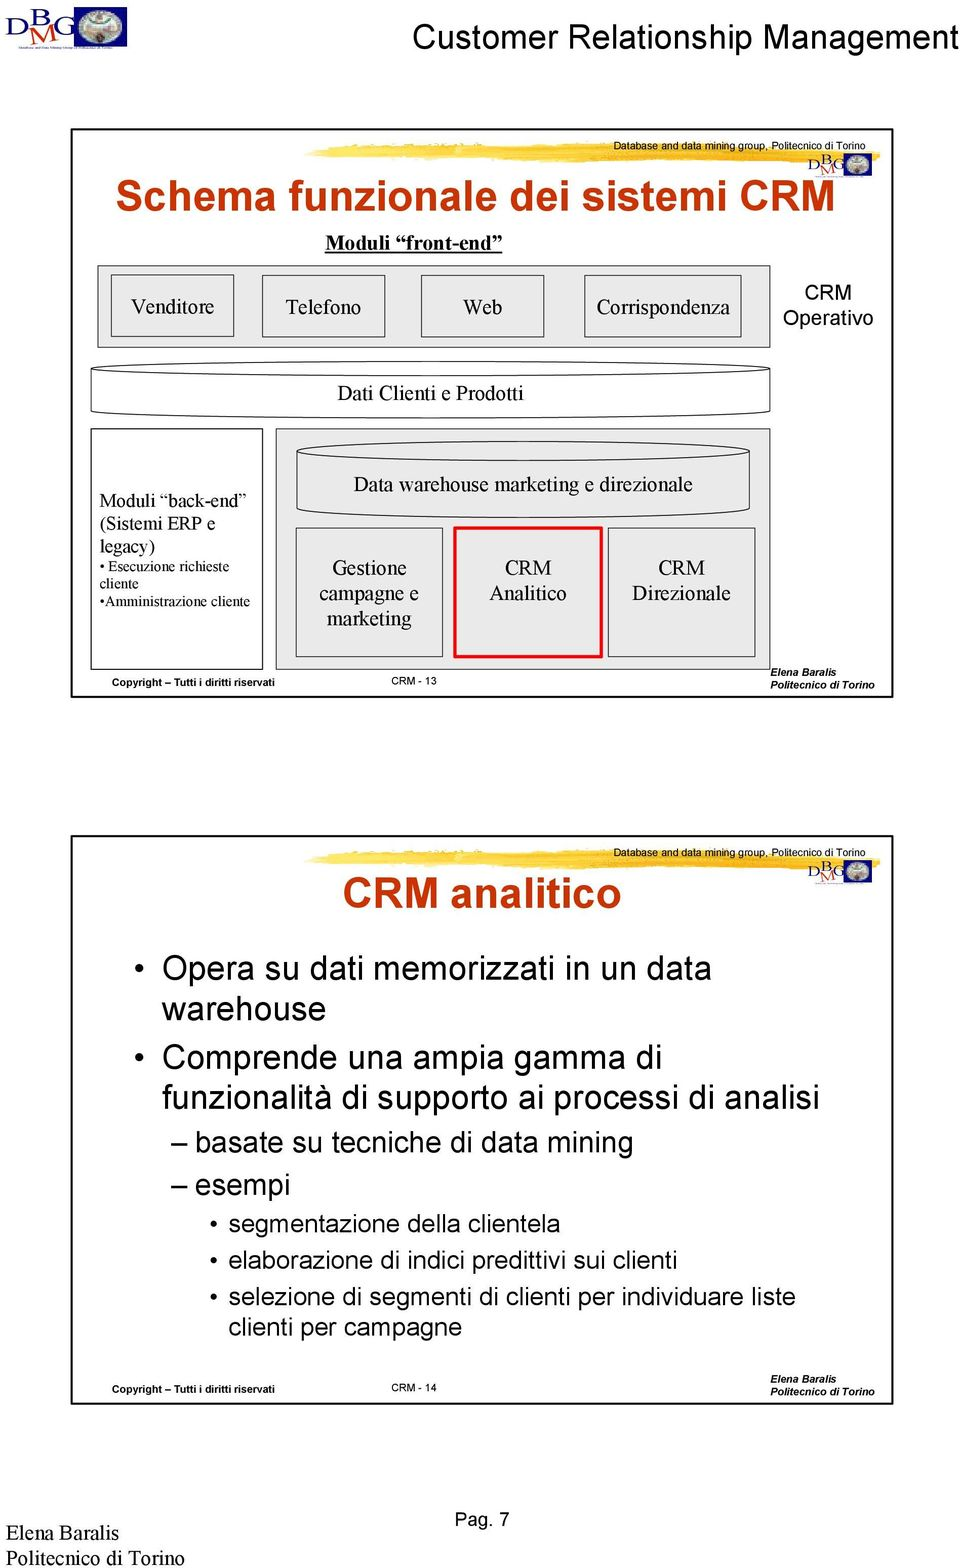 e marketing Analitico irezionale - 13 analitico Opera su dati memorizzati in un data warehouse atabase and data mining group, Comprende una ampia gamma di funzionalità di supporto ai processi di